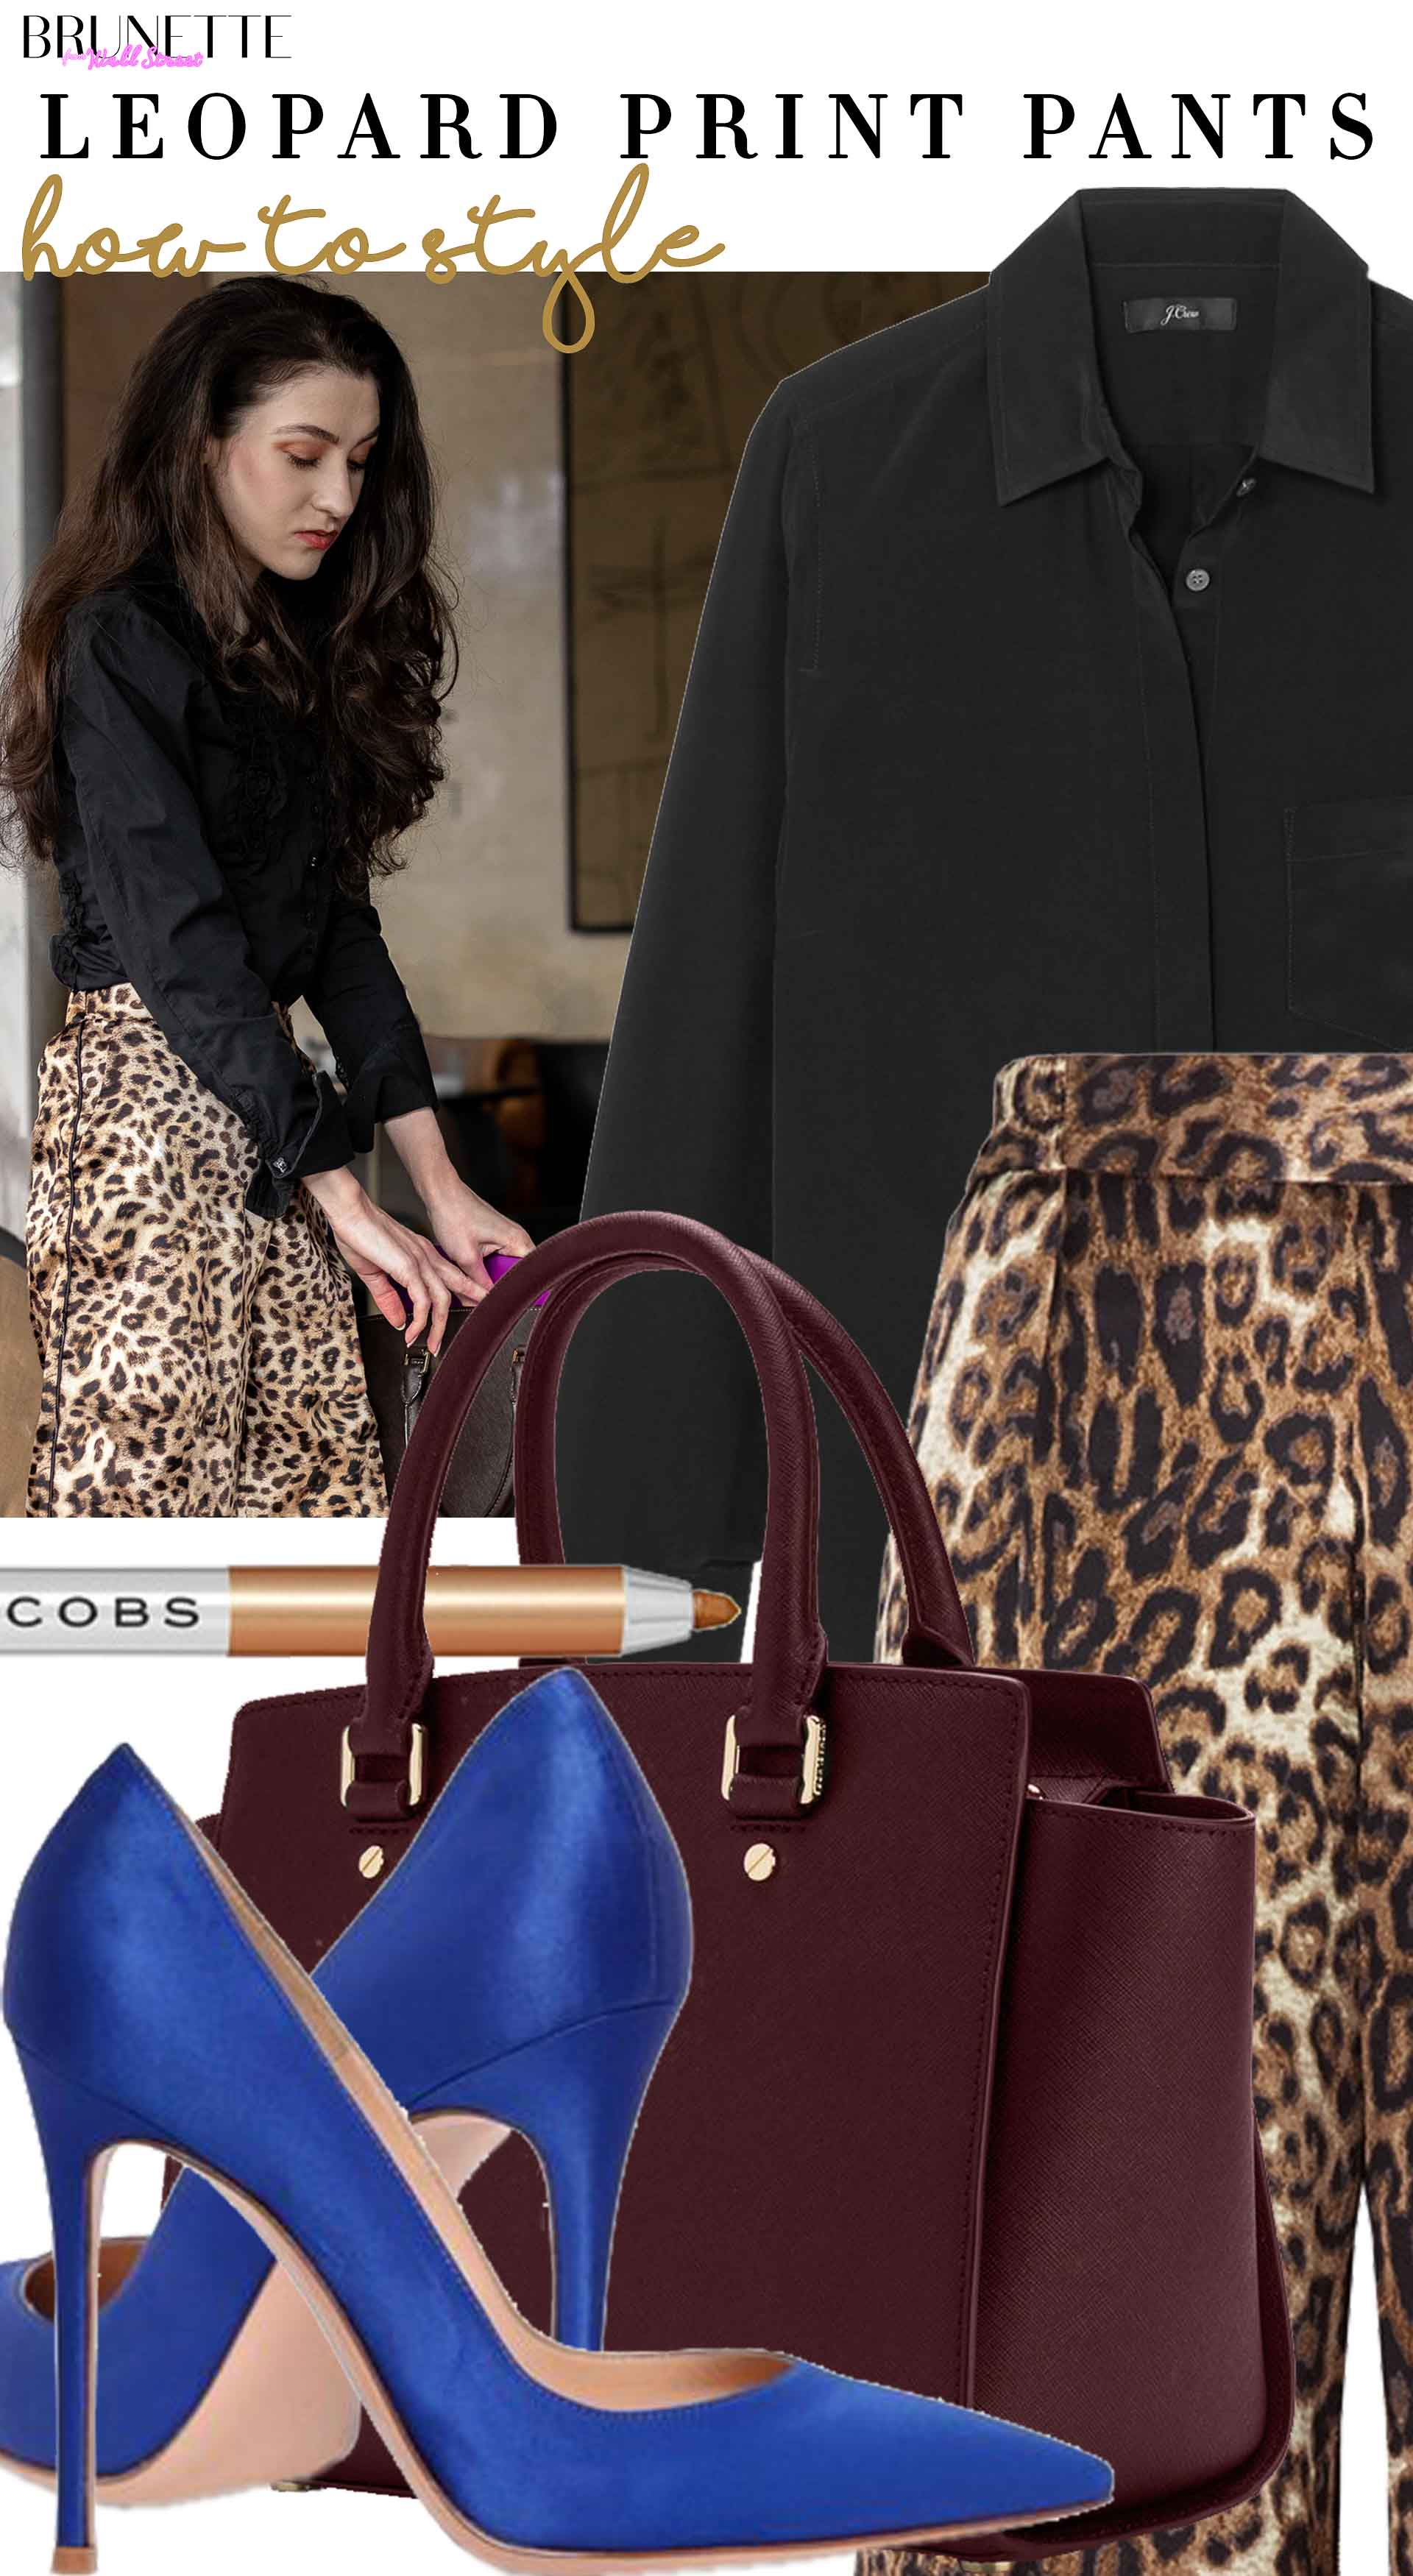 Brunette from Wall Street how to style leopard print pants for work business brunch